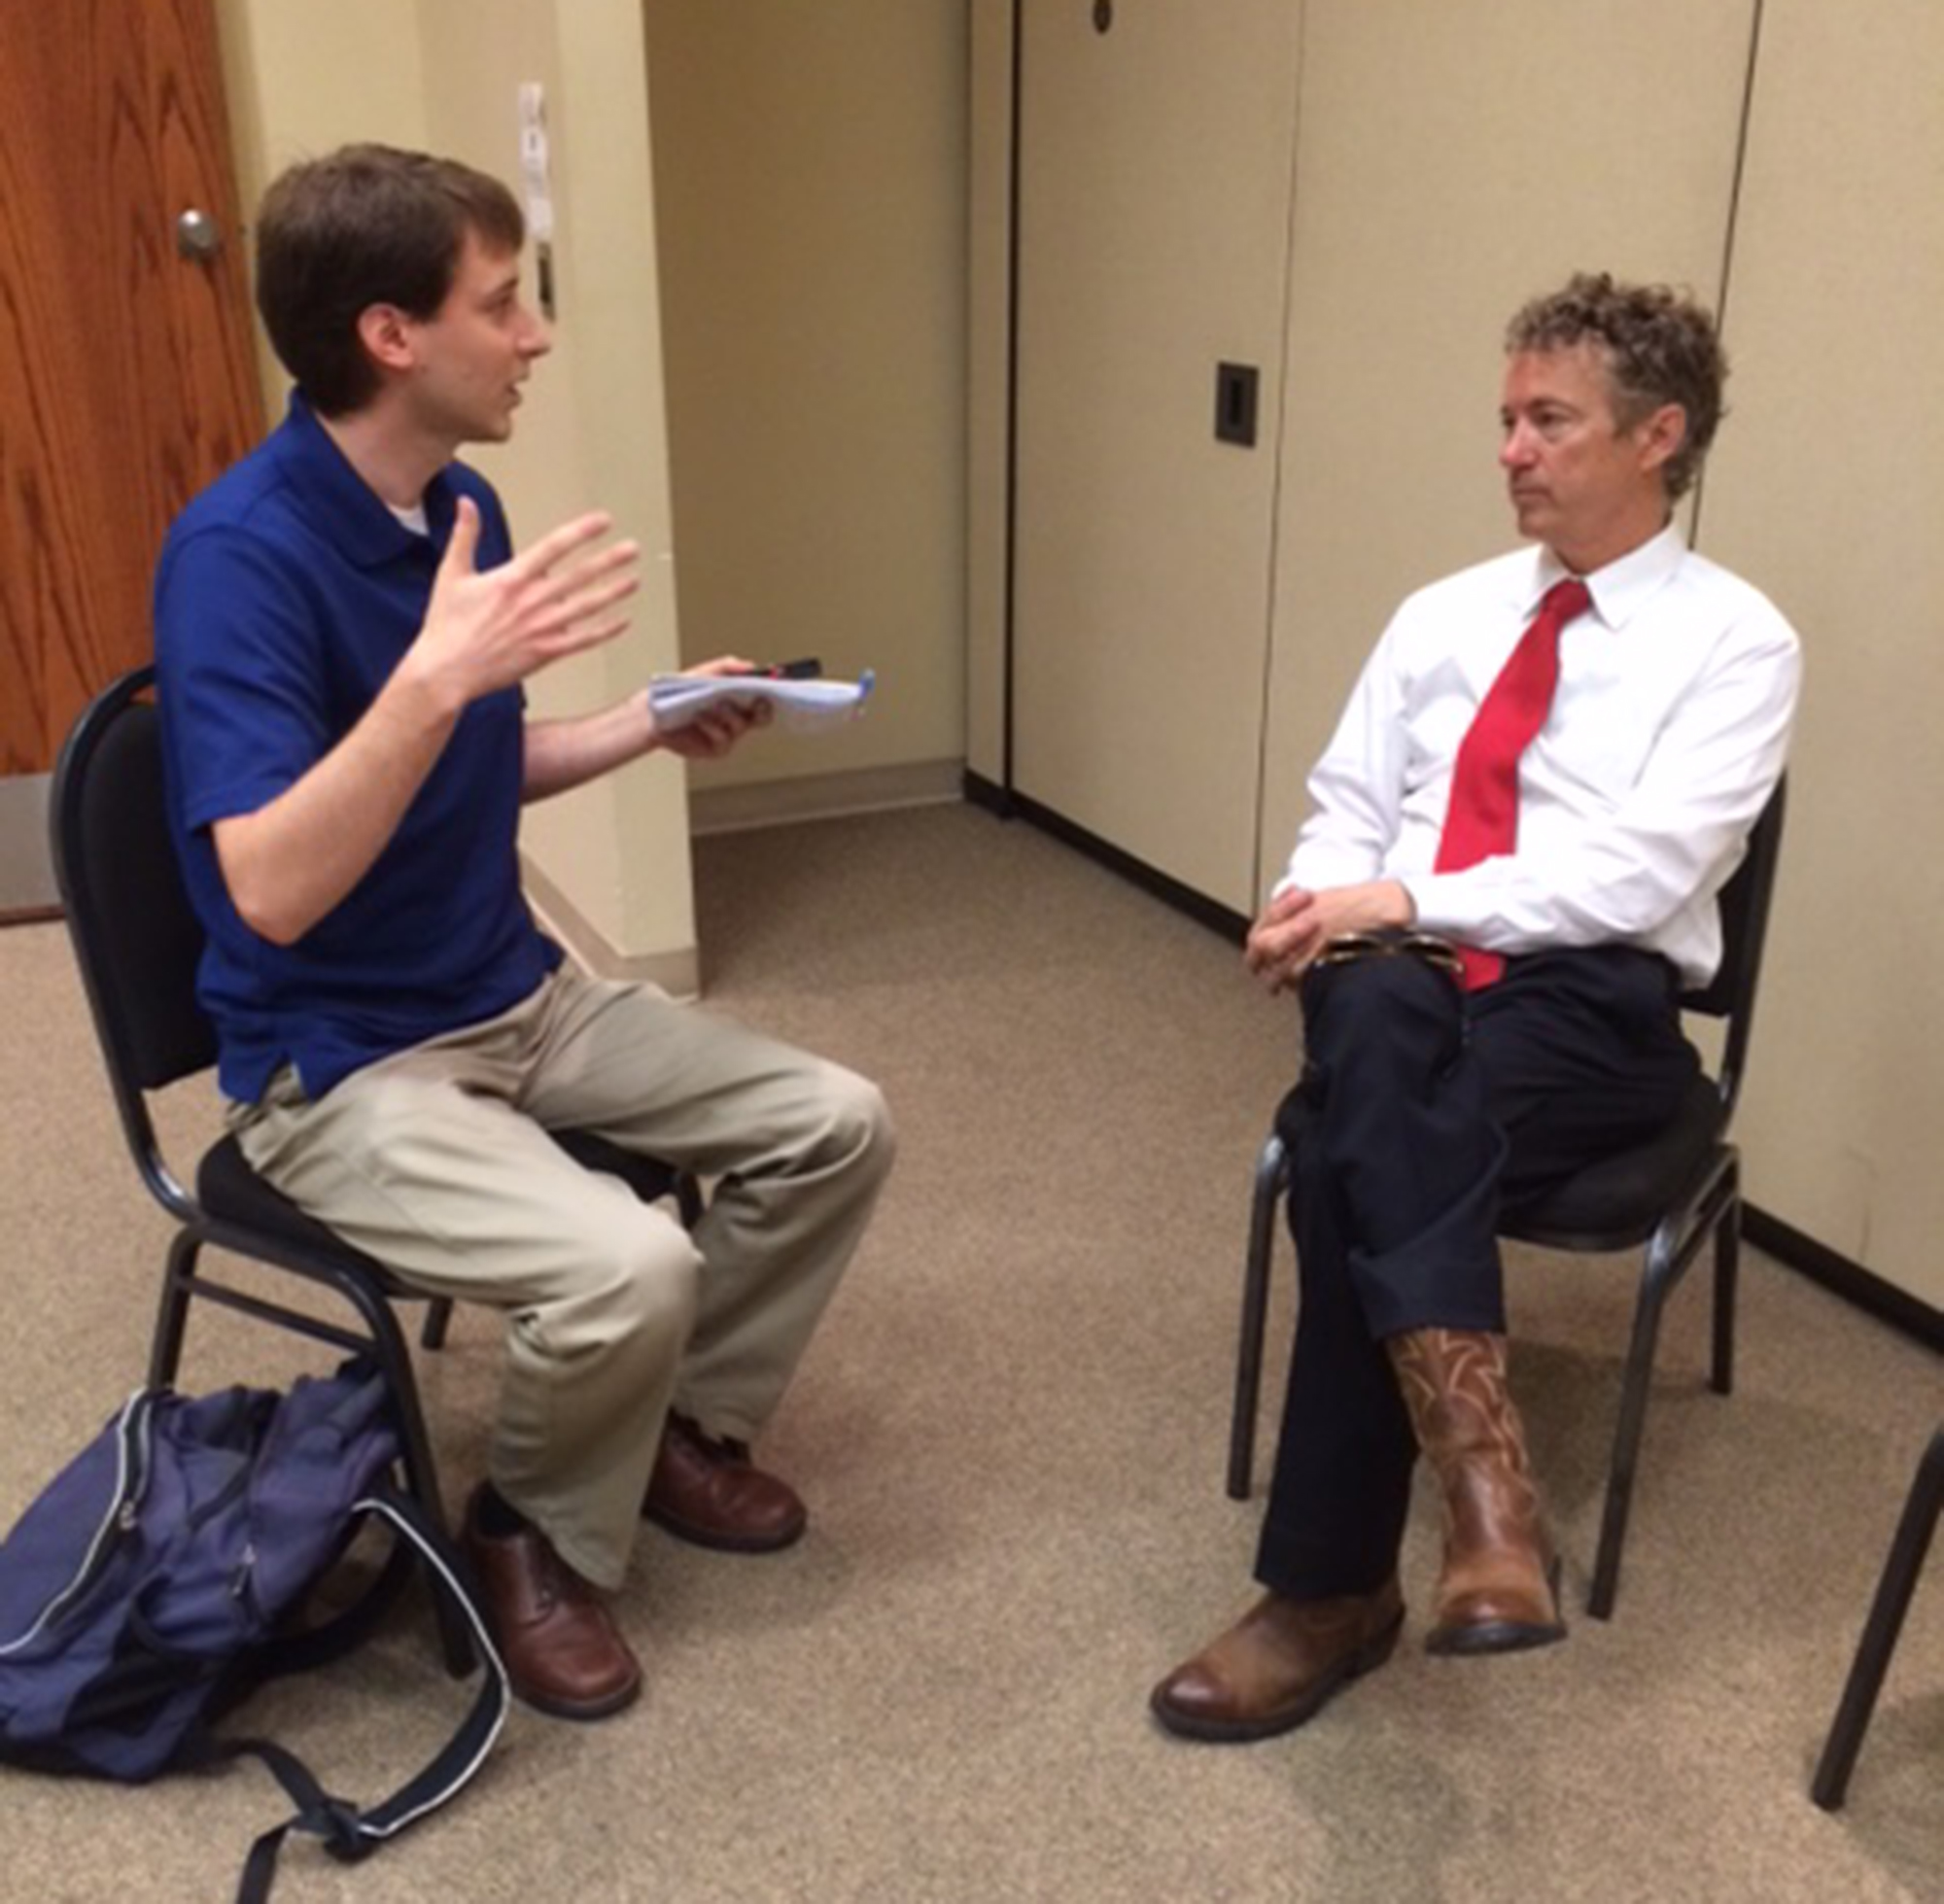 Source http://andyhallman.files.wordpress.com/2015/05/andy-with-rand-paul_net.jpg, included in http://andyhallman.wordpress.com/2015/05/17/rand-paul-interview/